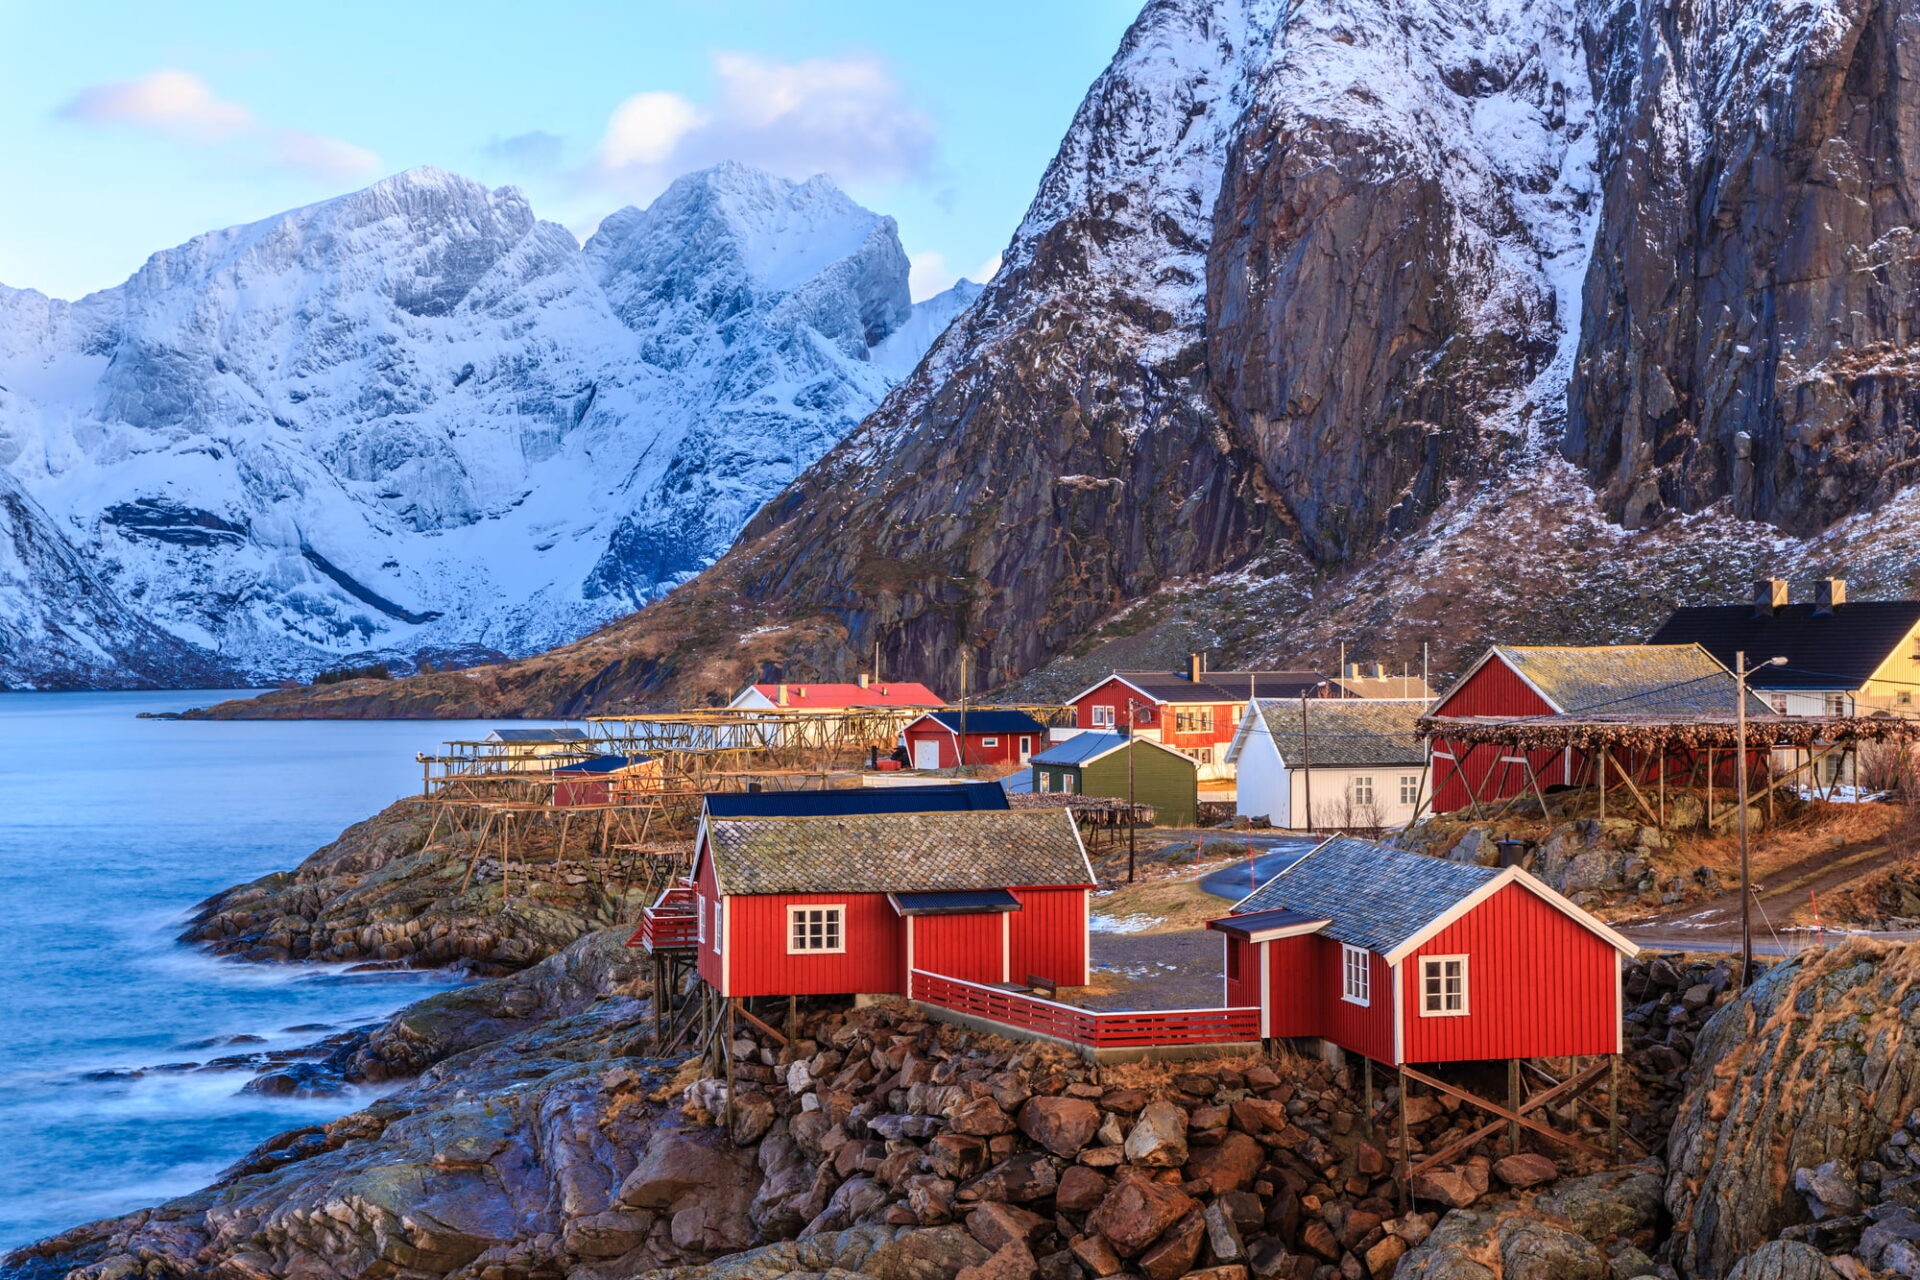 Norwegian fishing village by the fjords